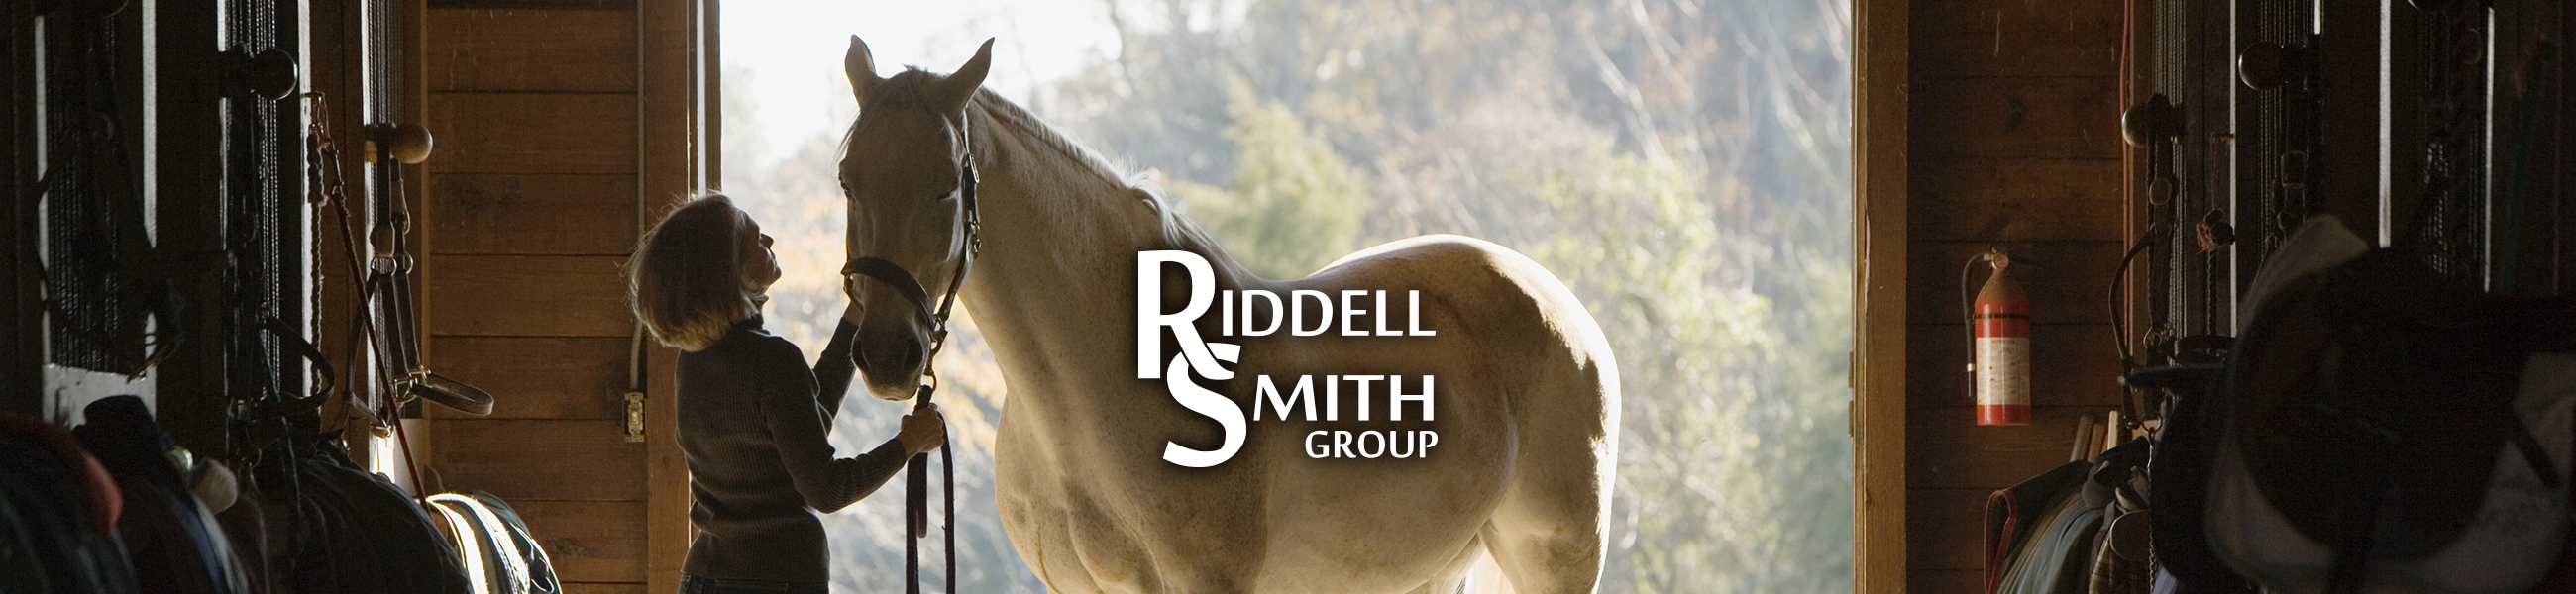 riddell smith group - articles